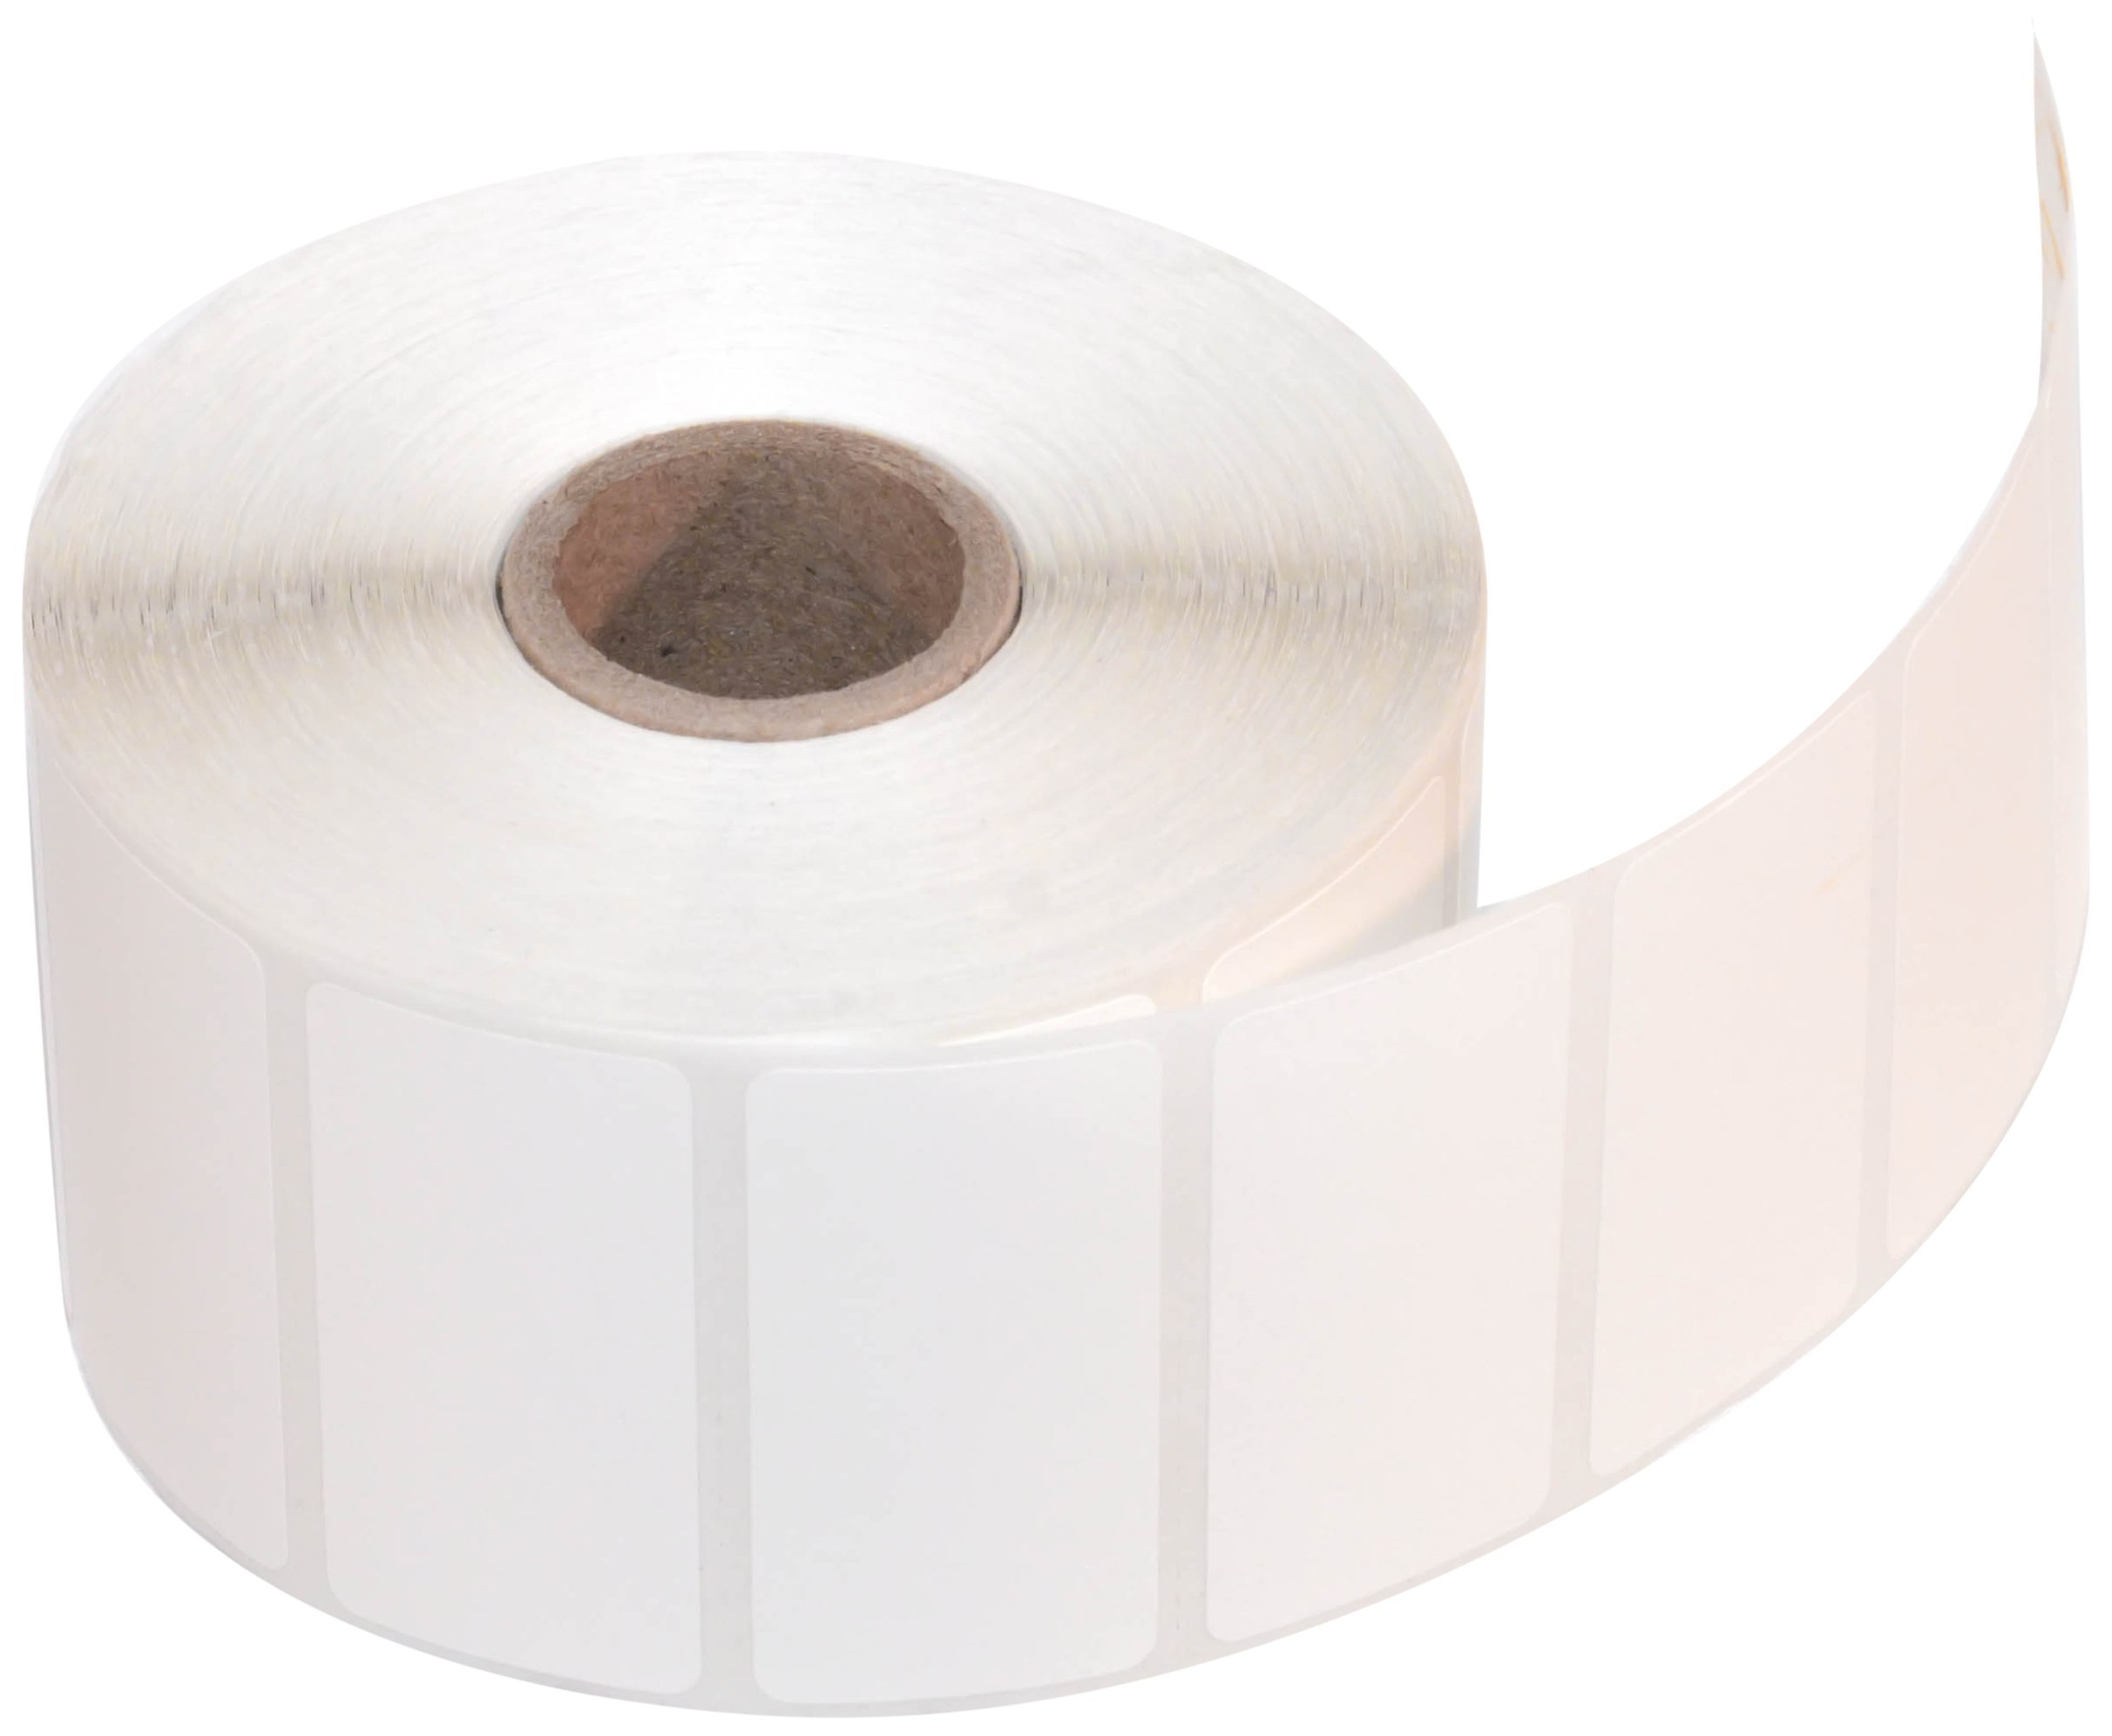 CompuLabel Direct Thermal Labels, 2-Inch x 1 Inch, White, Roll, Permanent Adhesive, Perforations Between Labels, 1300 per Roll, 12 Rolls per Carton (530550) by Compulabel (Image #1)